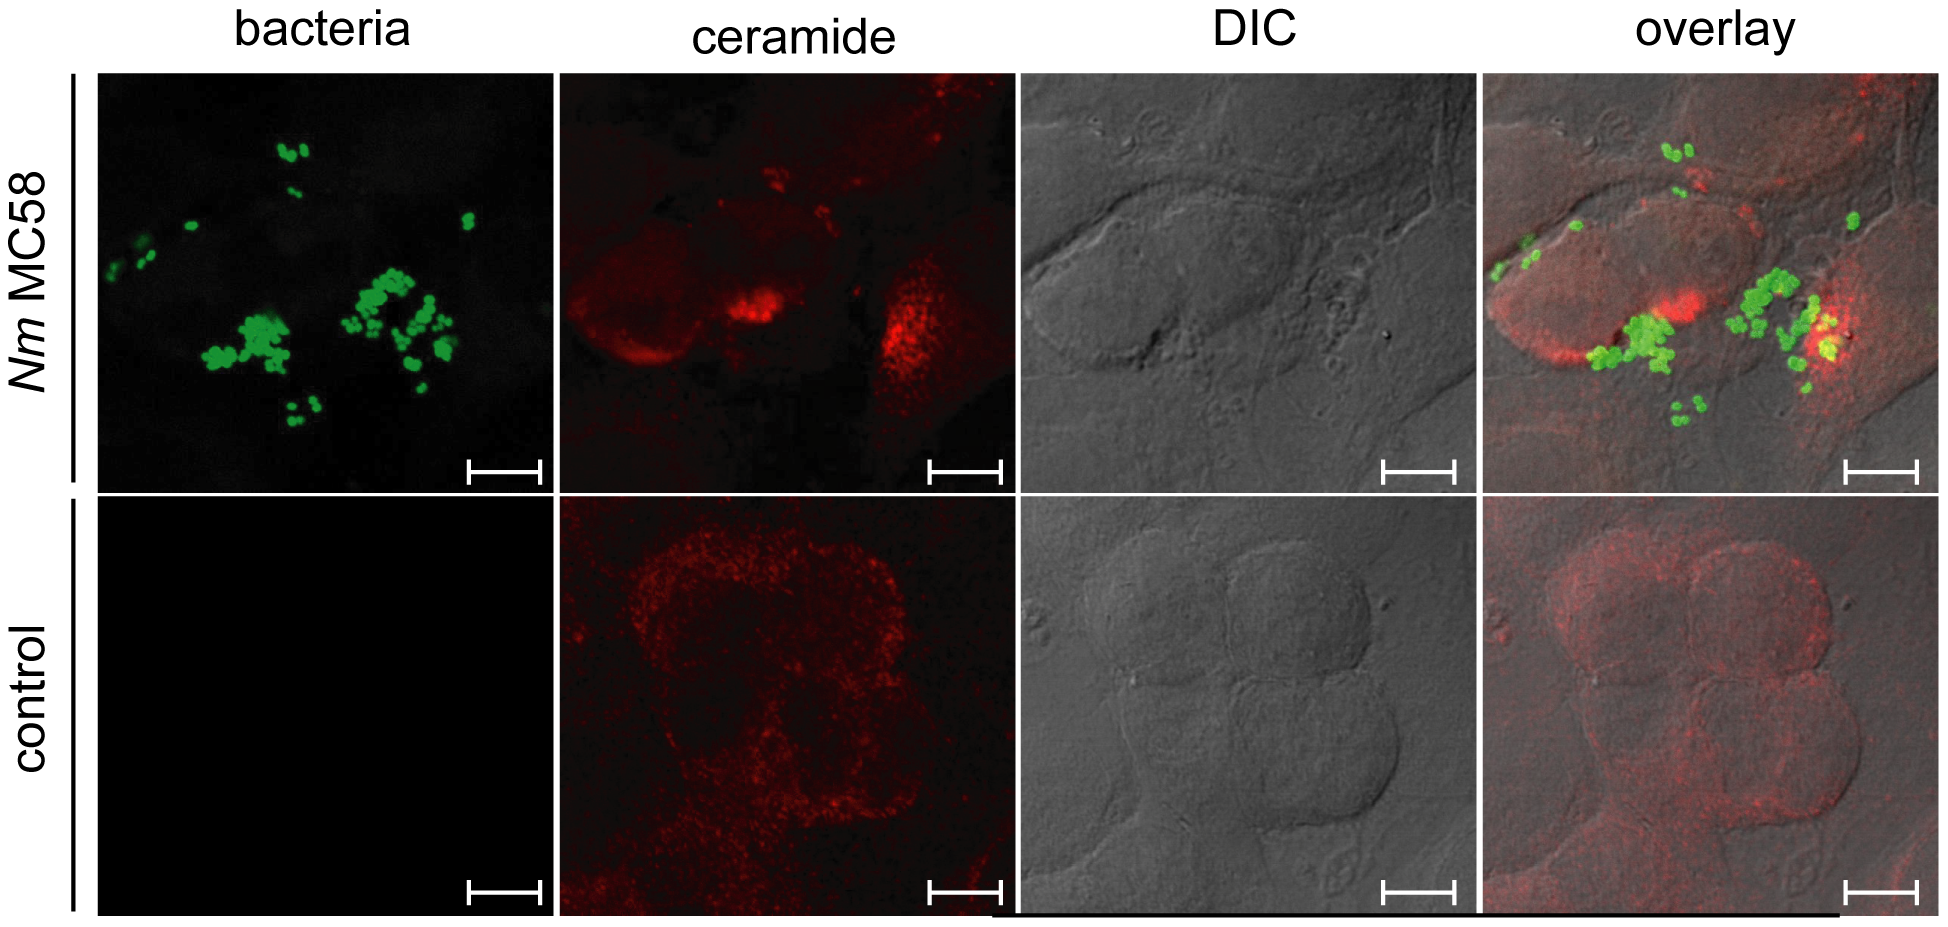 <i>N. meningitidis</i> induces the formation of ceramide-enriched membrane platforms on brain endothelial cells (HBMEC).